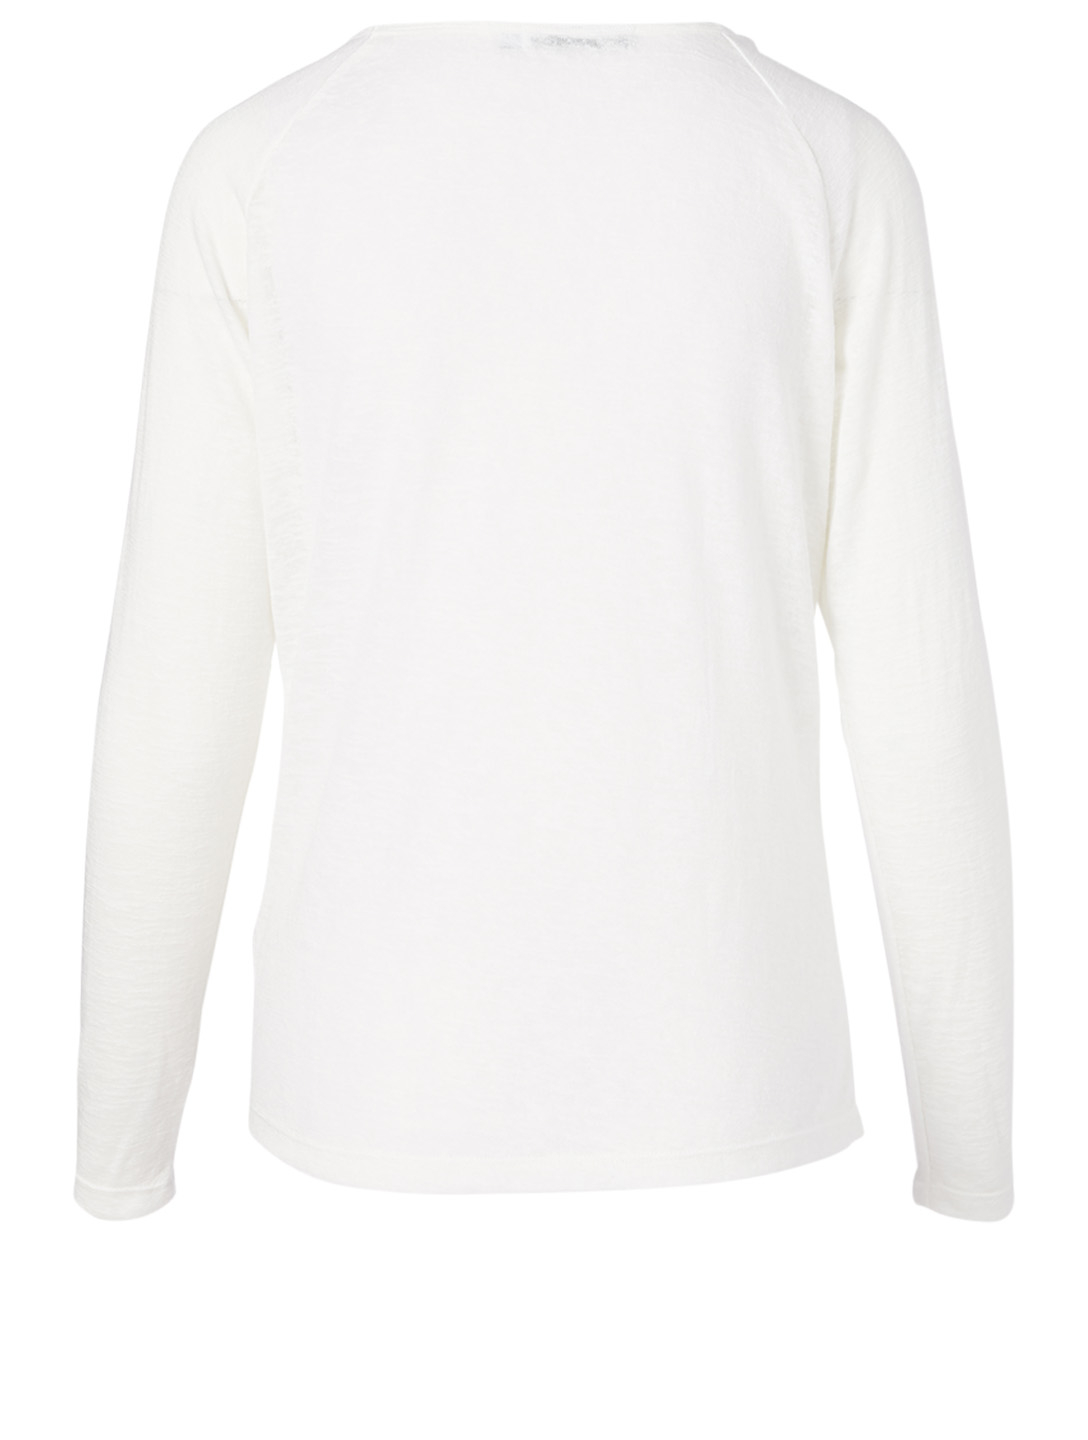 ALL FENIX Haven Long-Sleeve Top Women's White